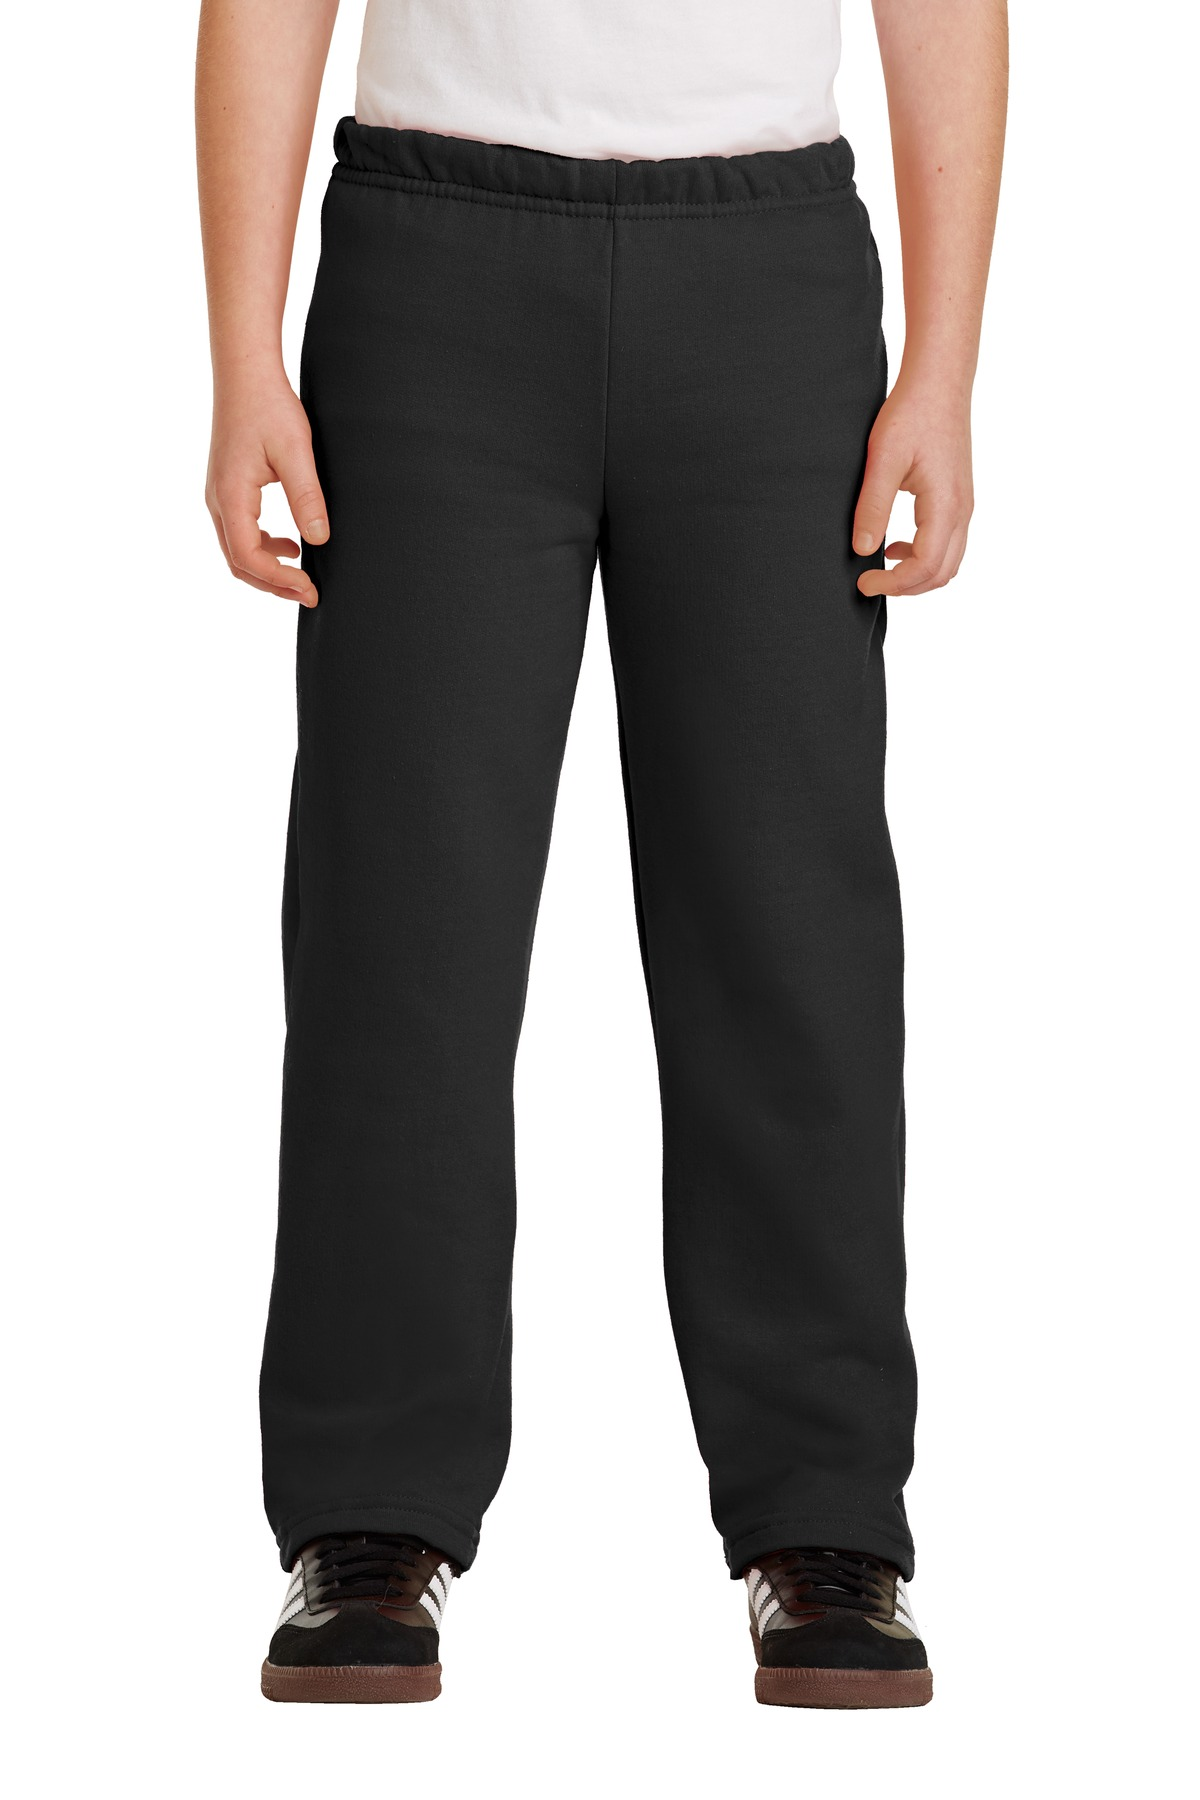 SanMar Gildan 18400B, Gildan® Youth Heavy Blend Open Bottom Sweatpant.